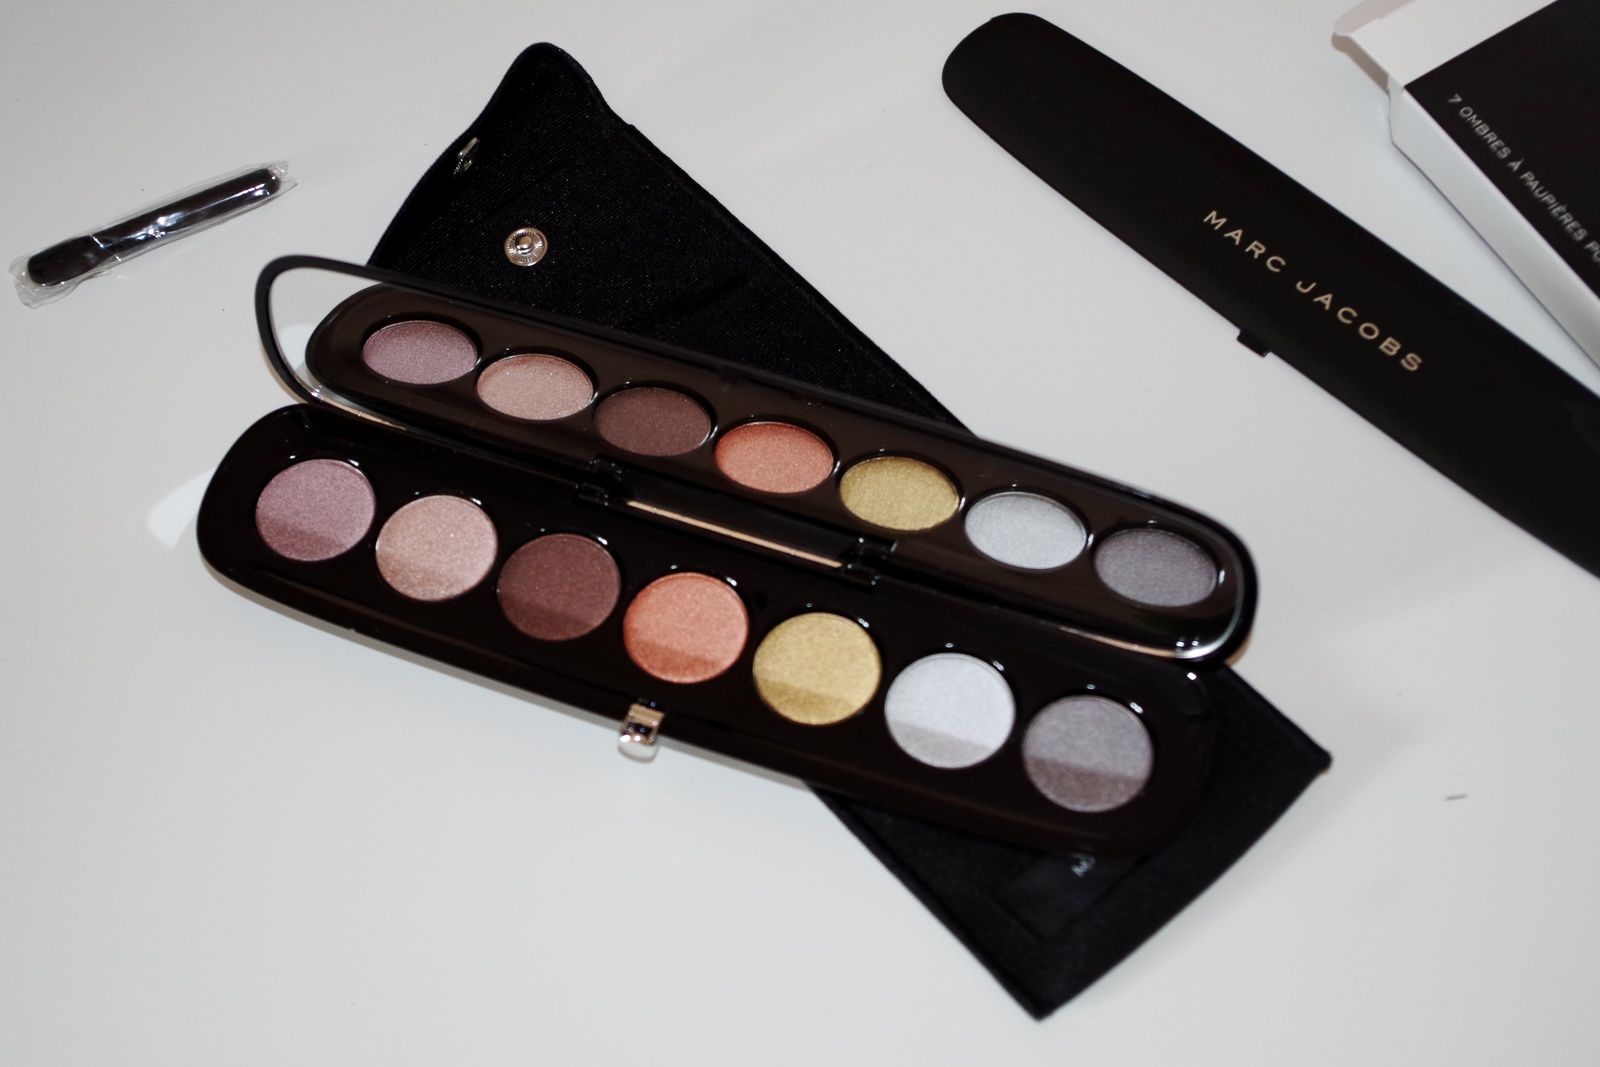 Palette Style Eye-Con n°7 - The Starlet - Marc Jacobs Beauty